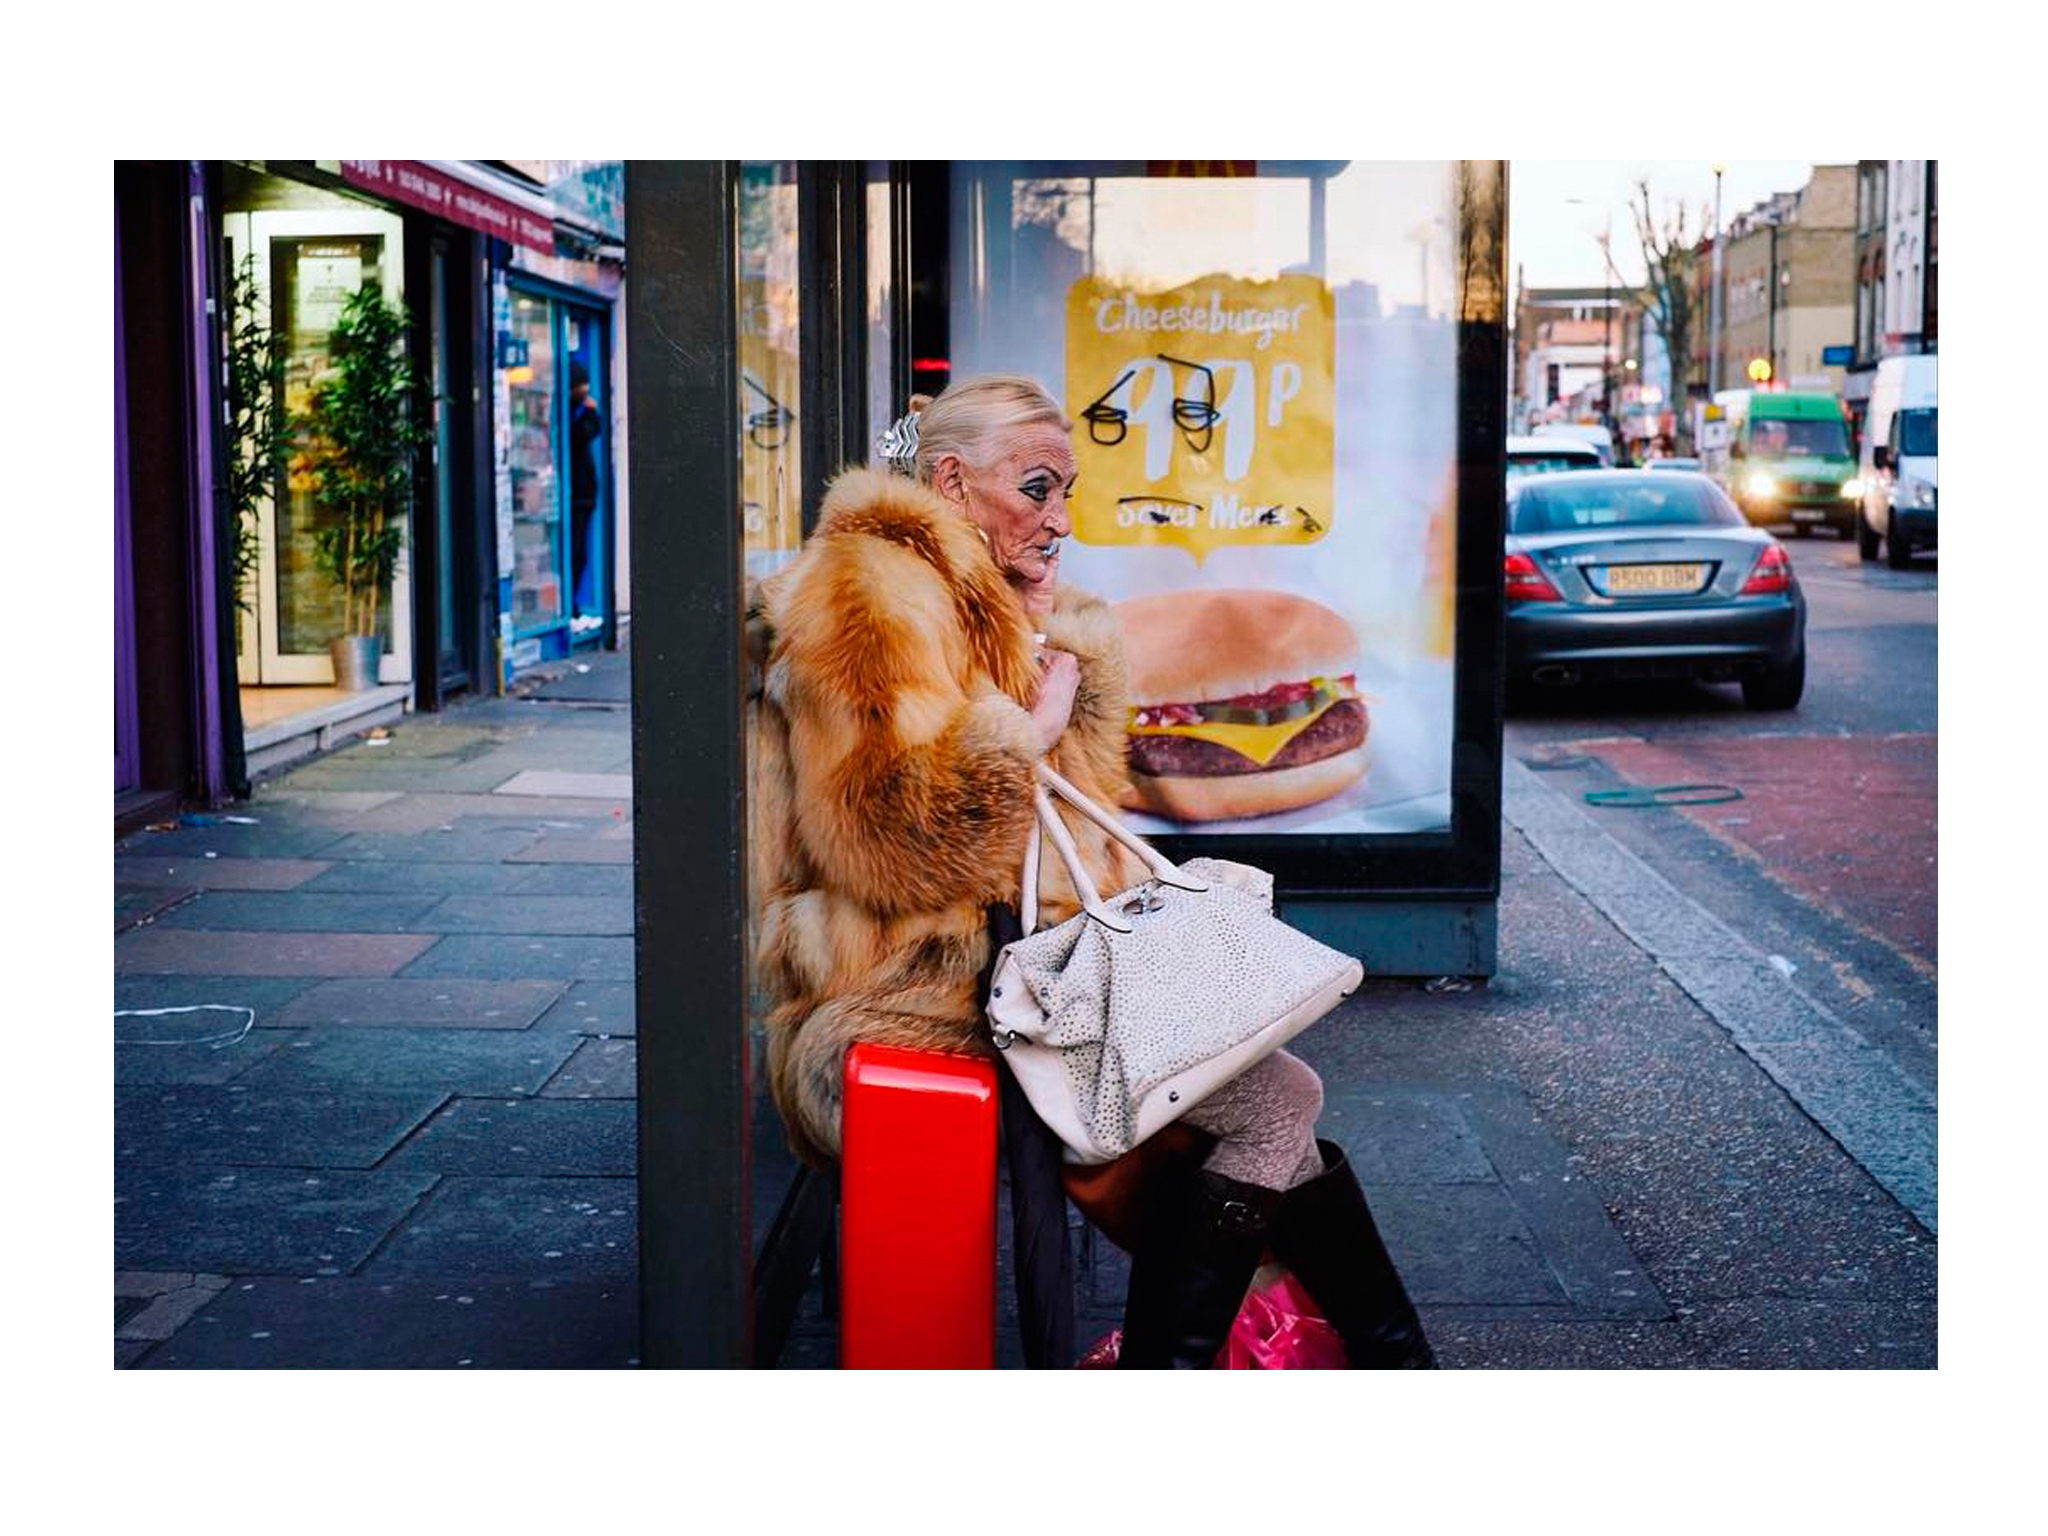 Six winning photos of London, chosen by Martin Parr